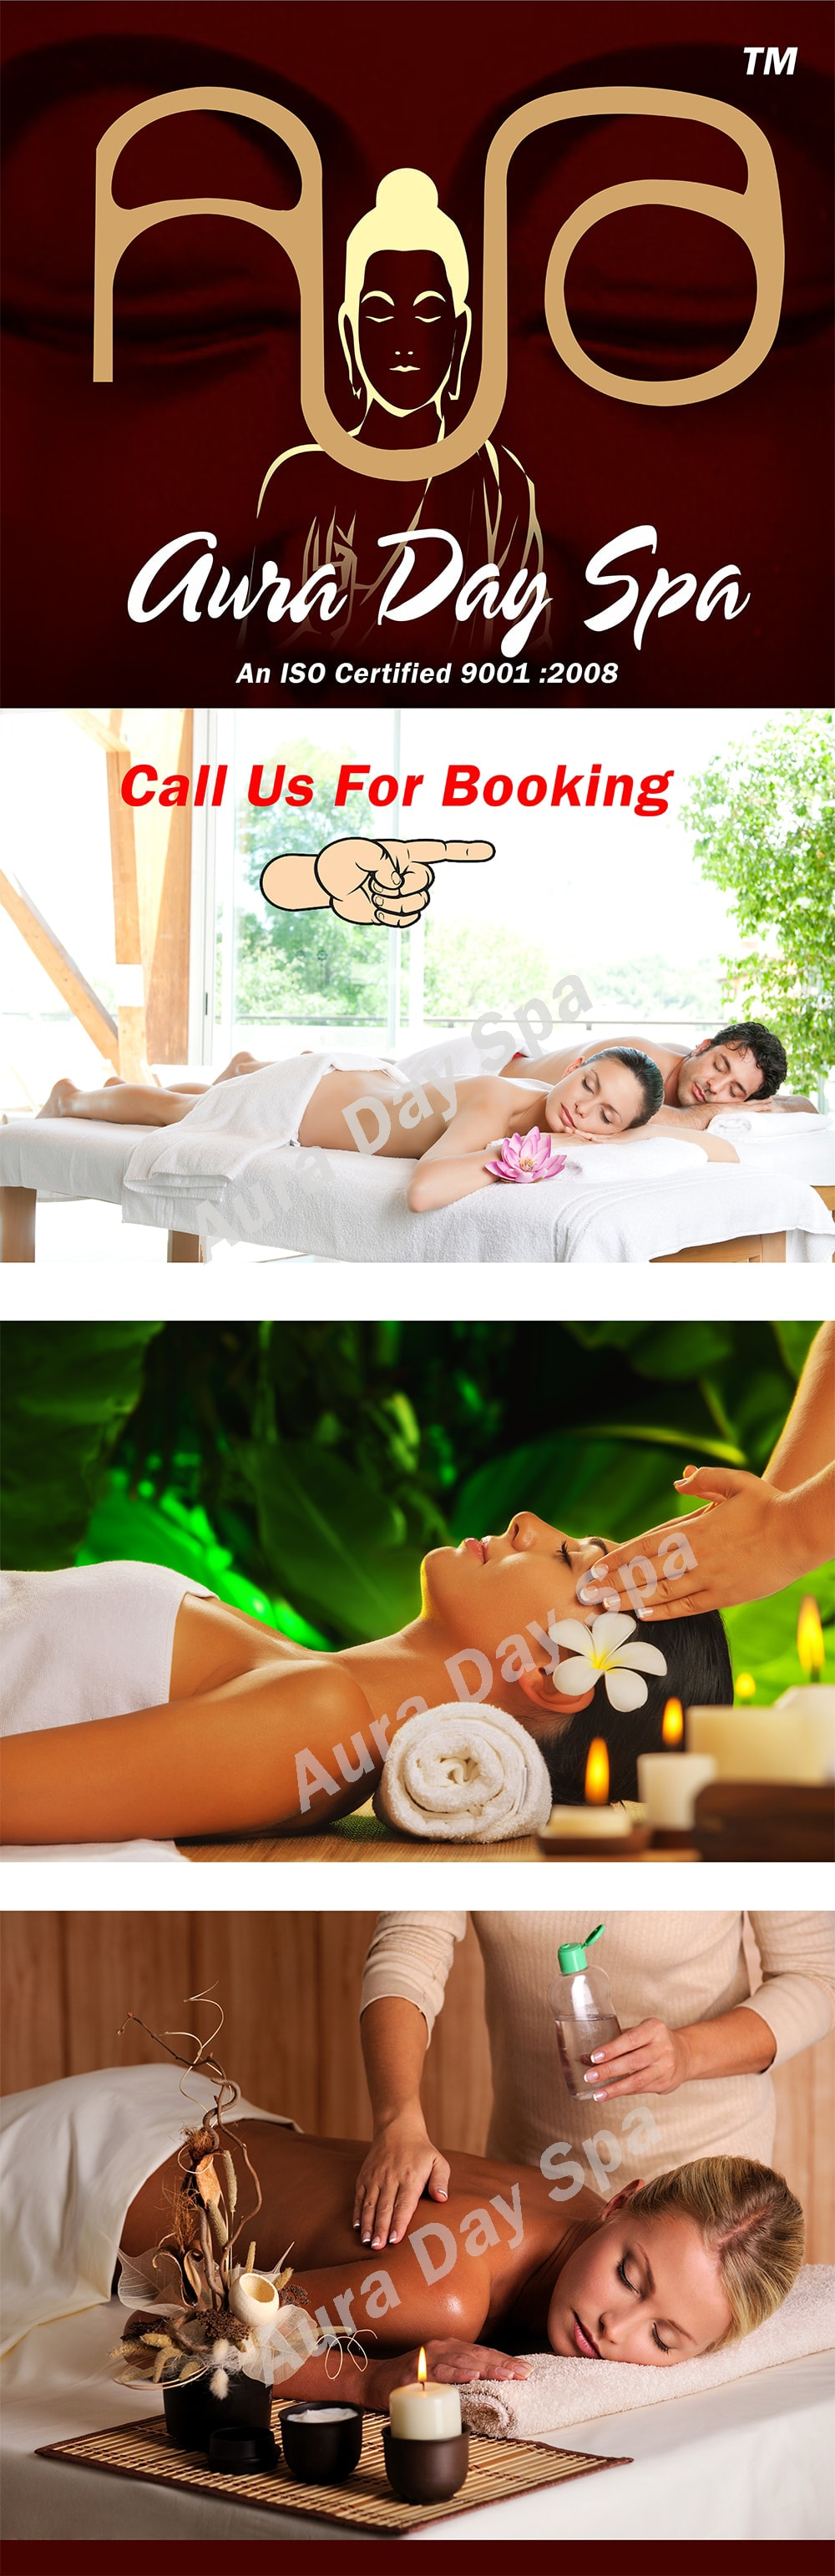 Aura Day Spa - Contact Us